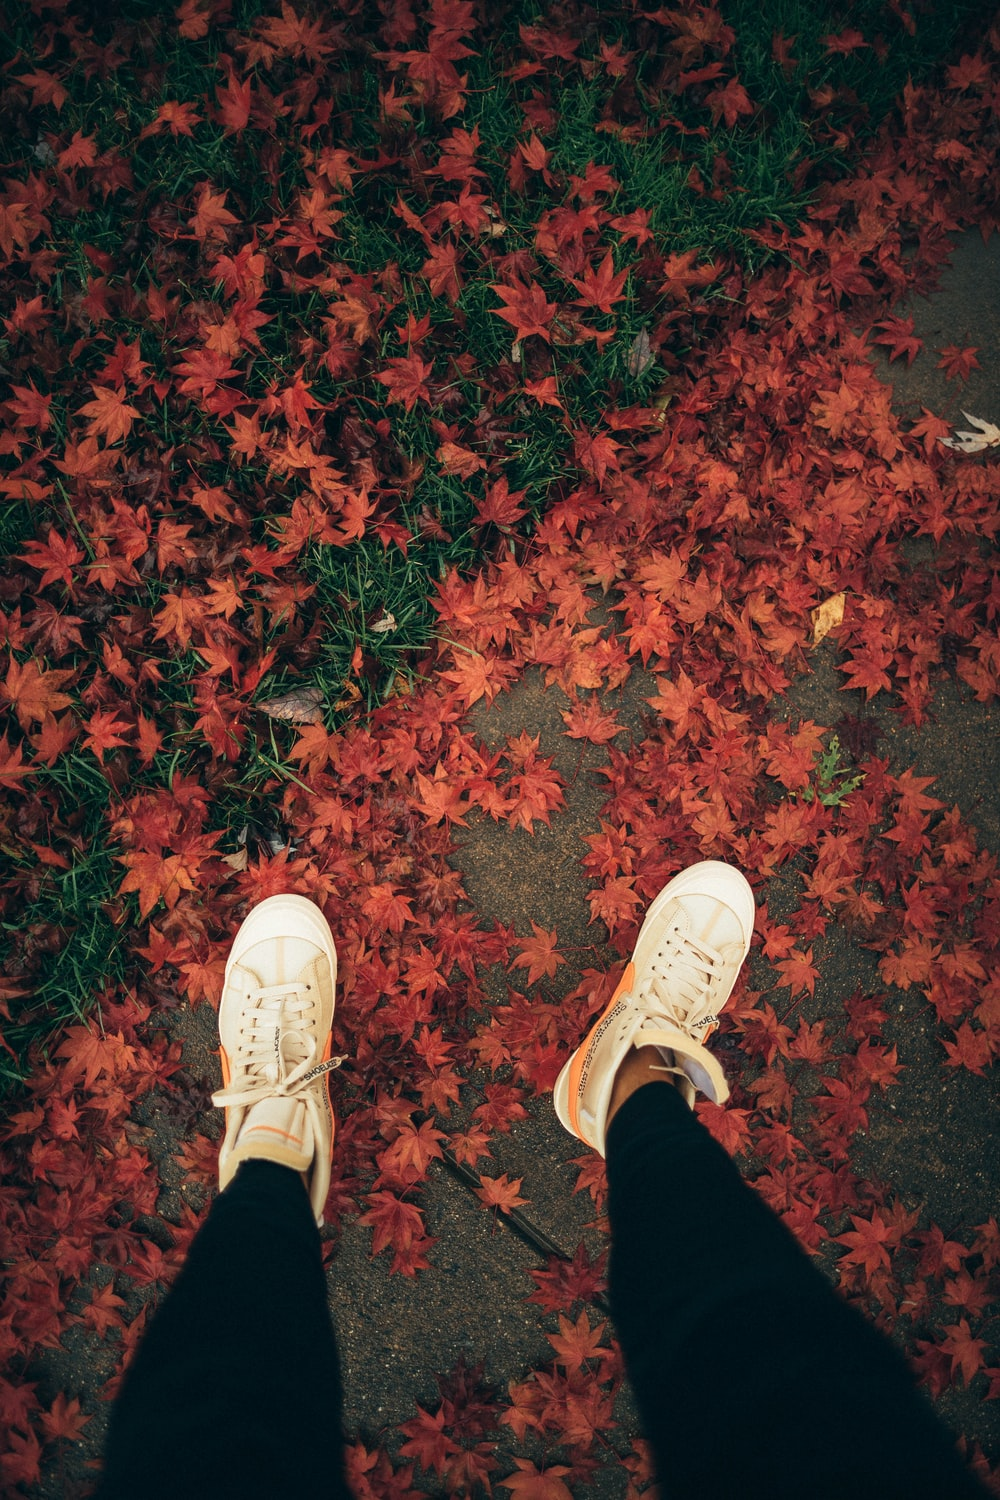 person standing on pavement with maple leaves on ground